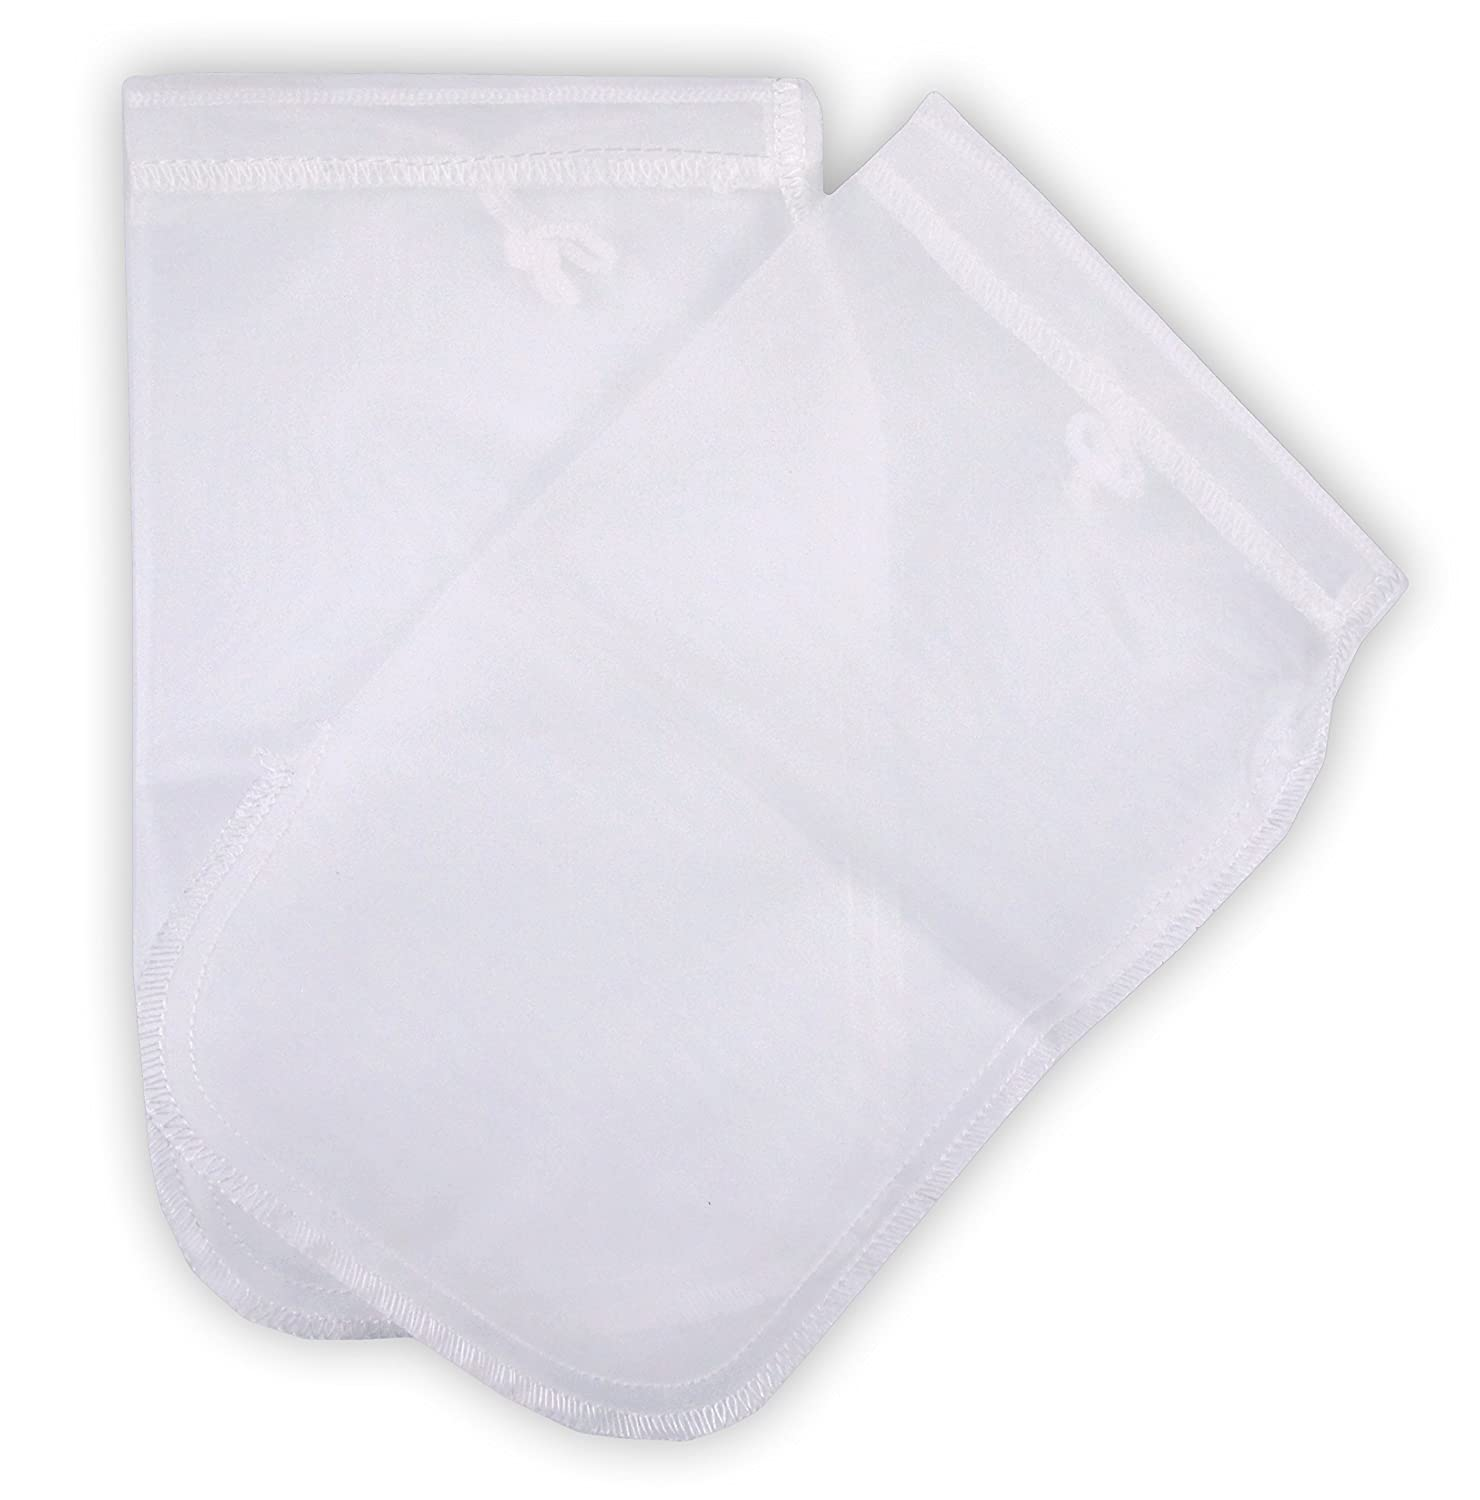 Cold Brew Coffee Bags (2 Pack); Reusable Coffee Brewing Mesh Bags